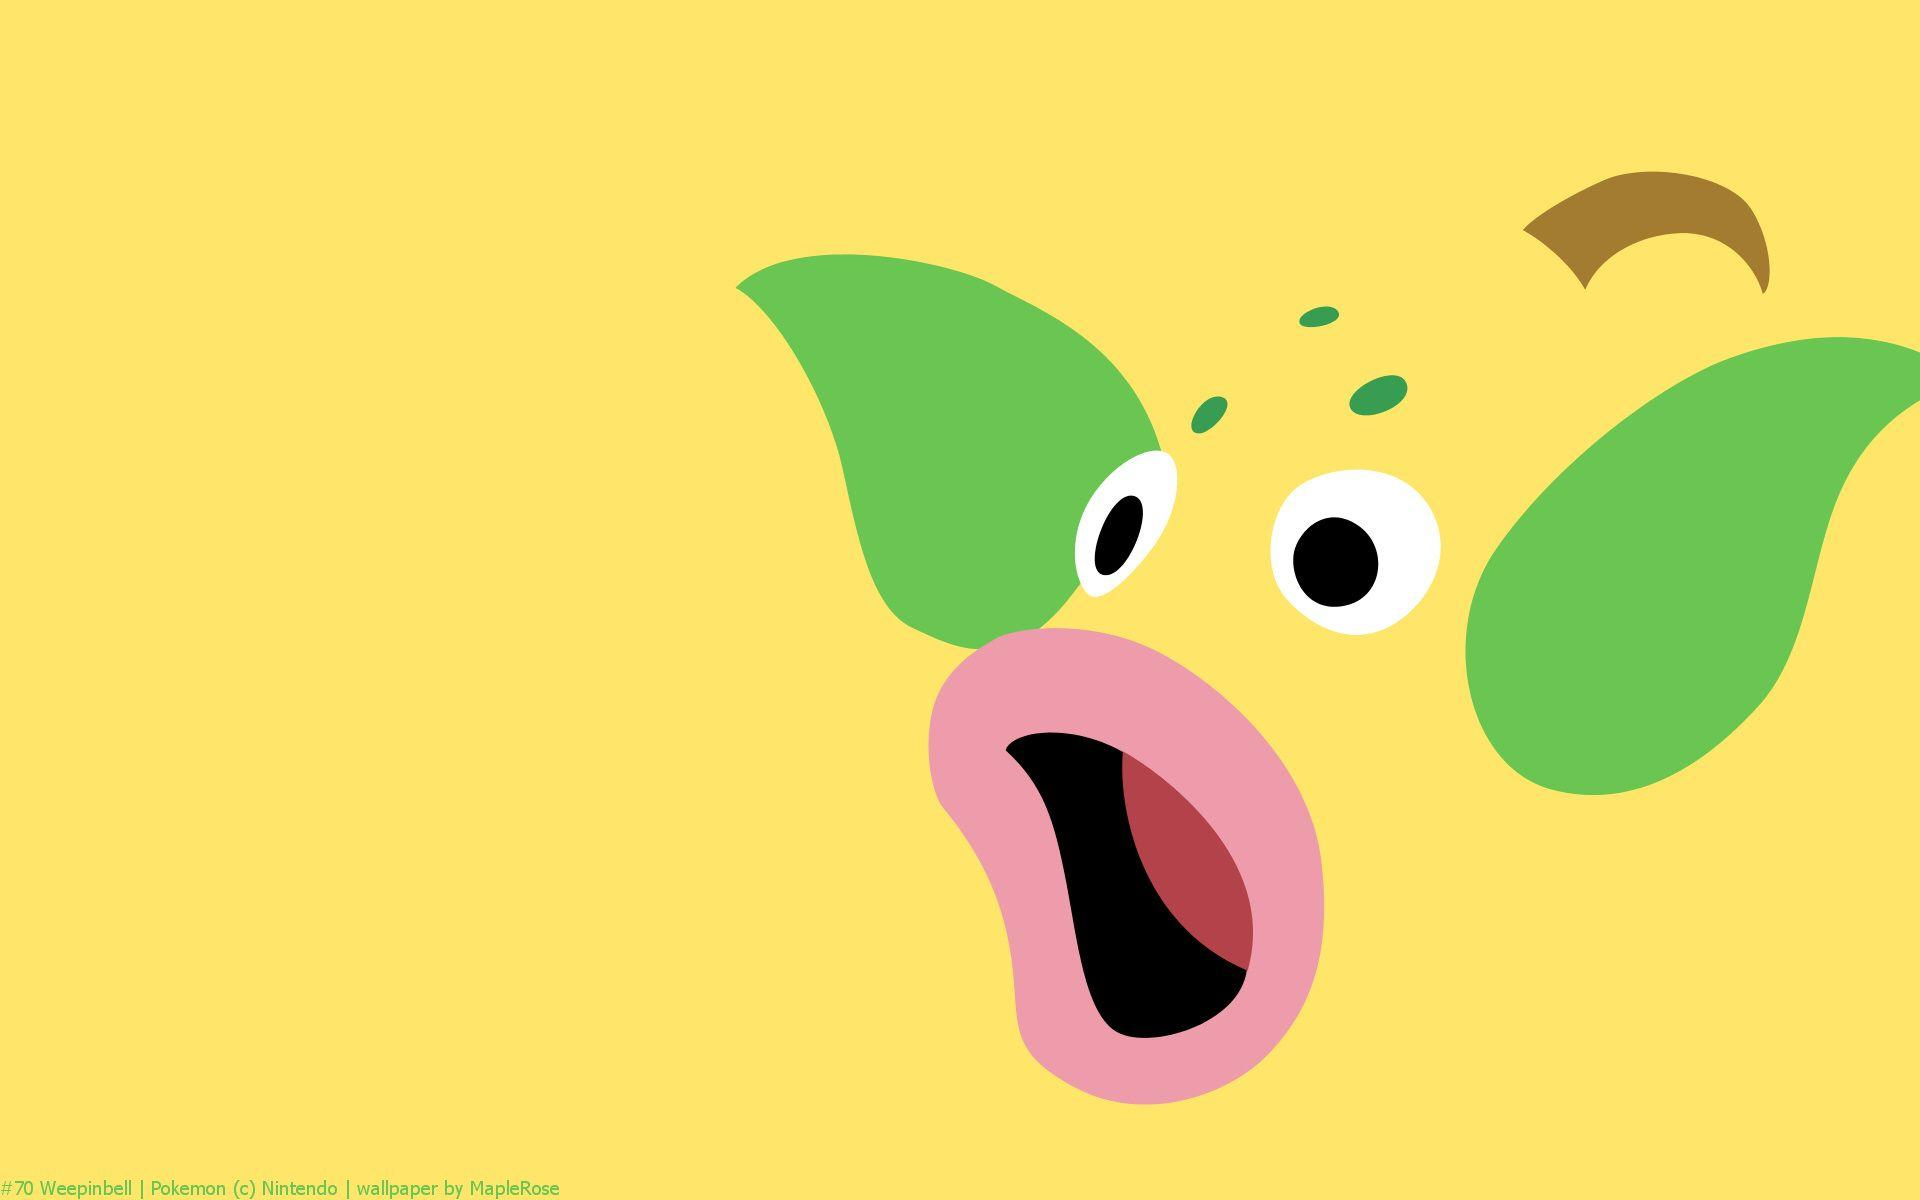 Weepinbell Pokemon HD Wallpaper - Free HD wallpapers, Iphone ...